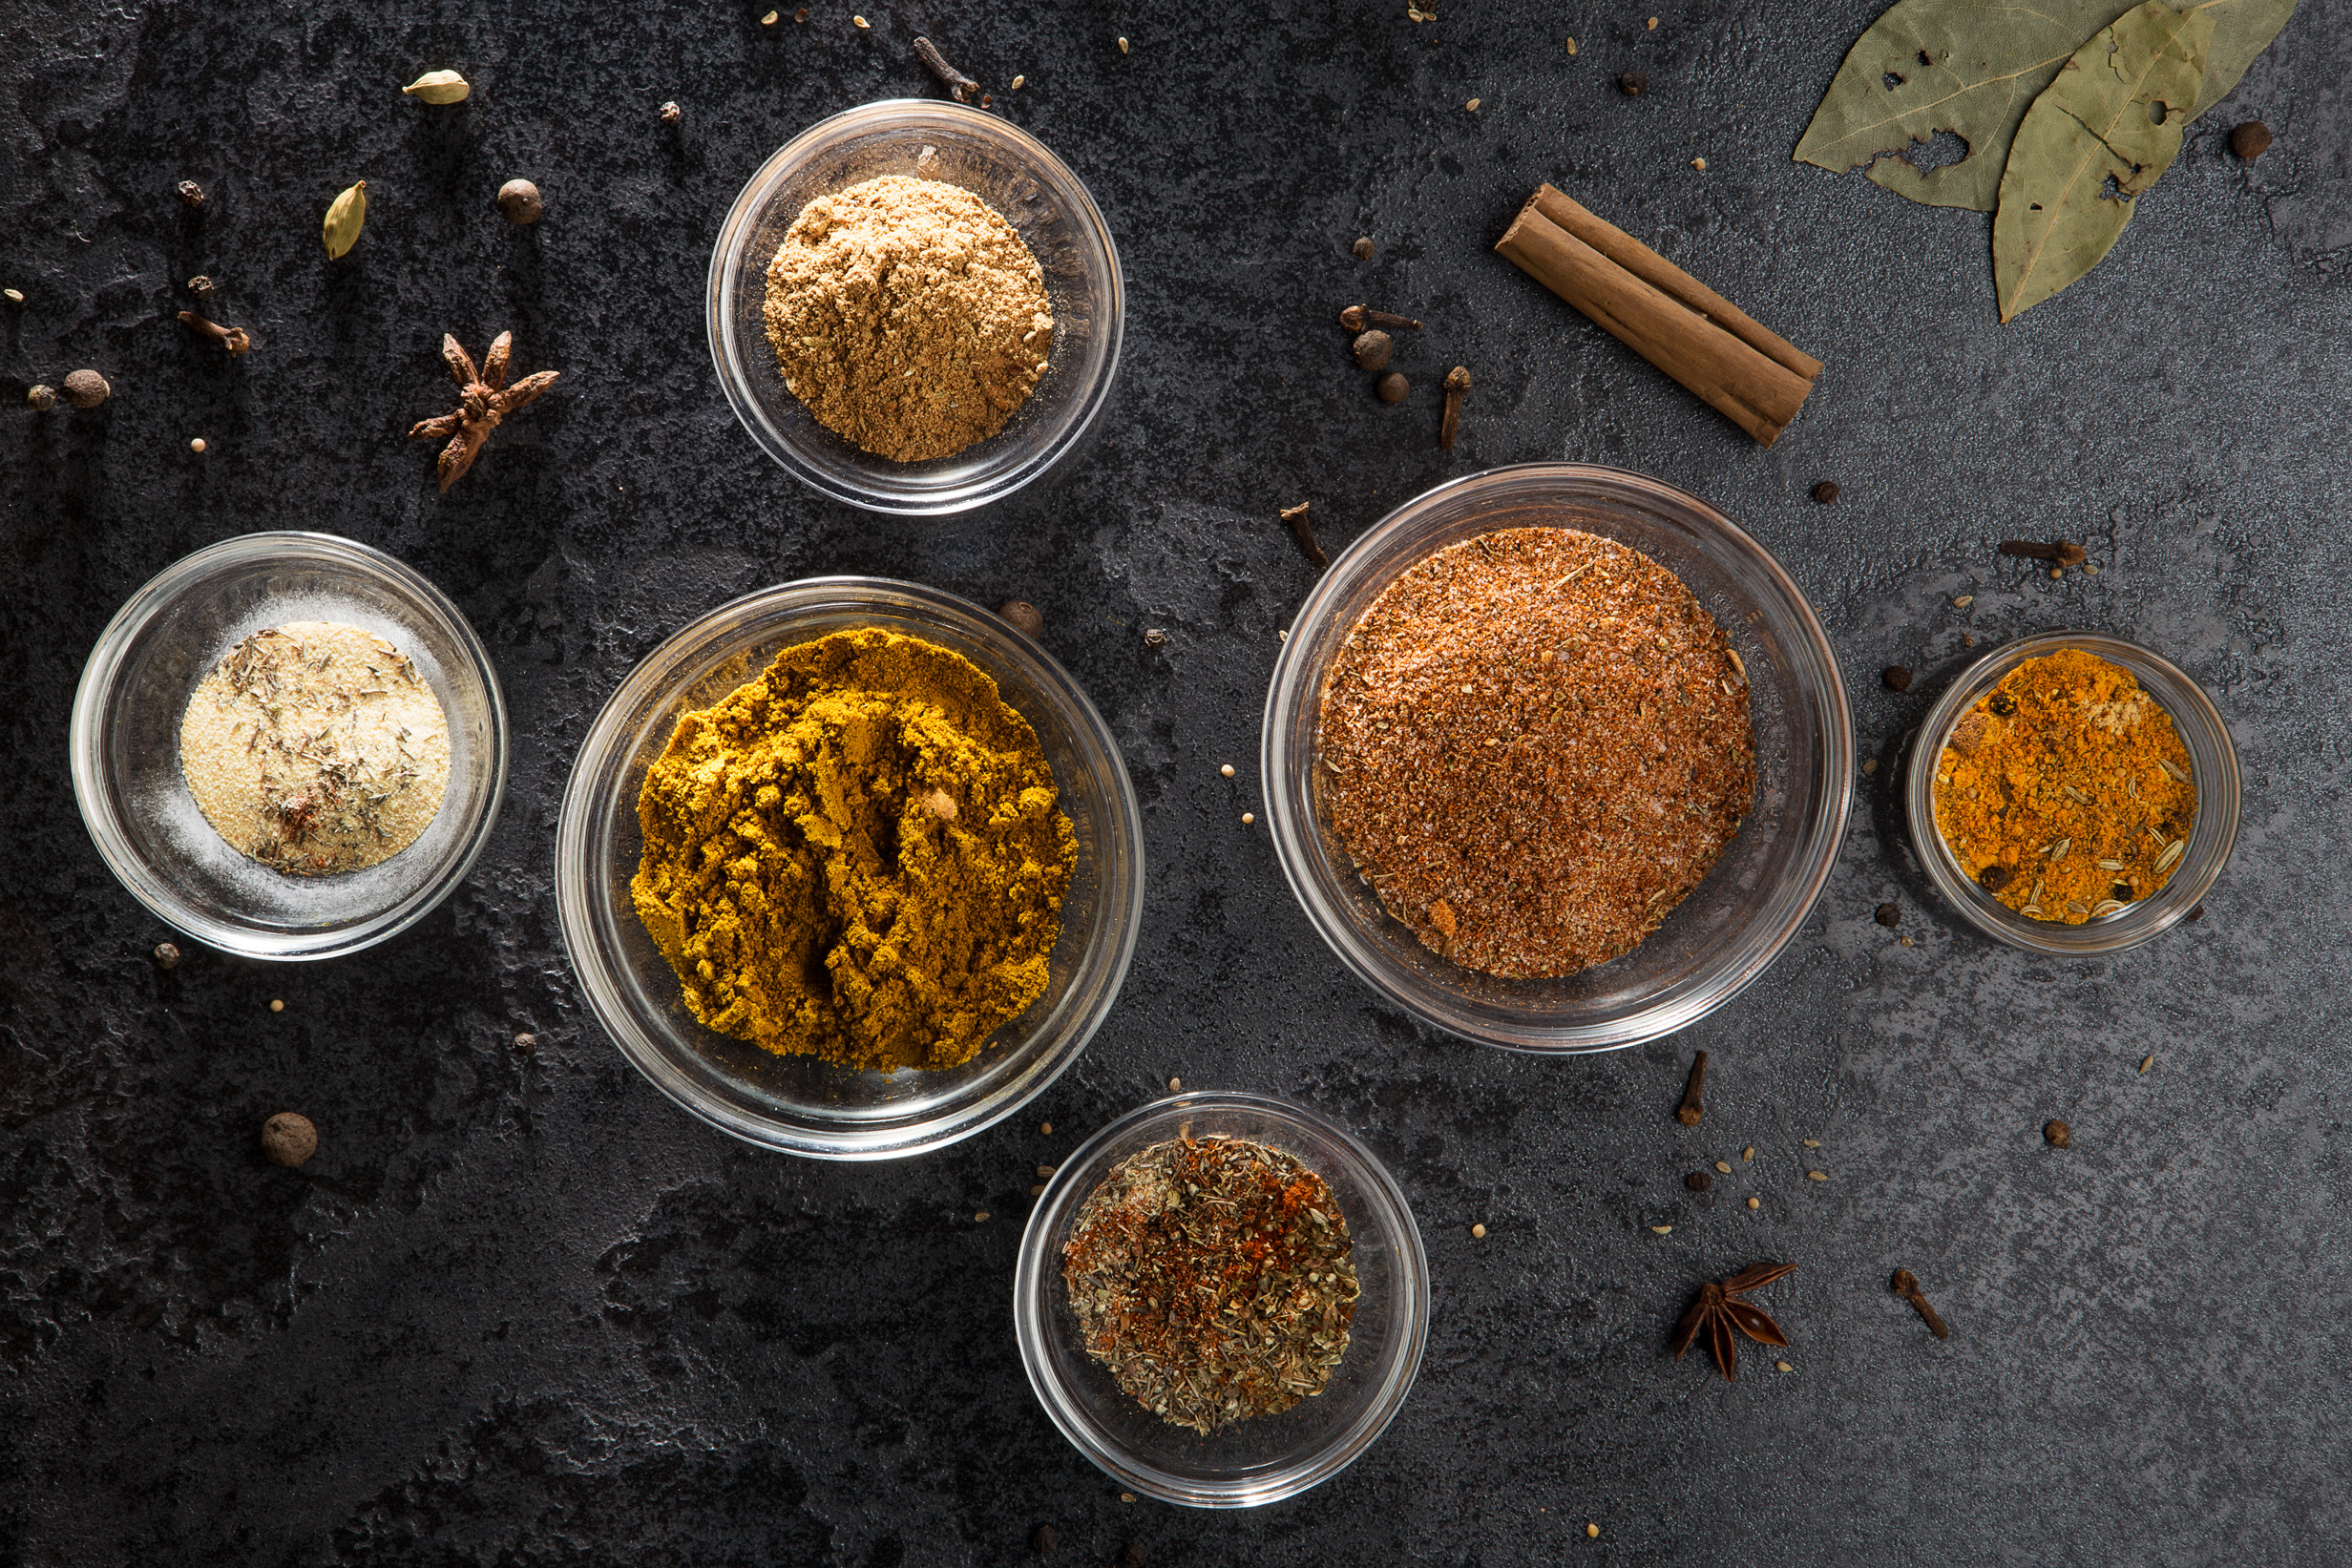 EP-20150326-spices-hires.jpg